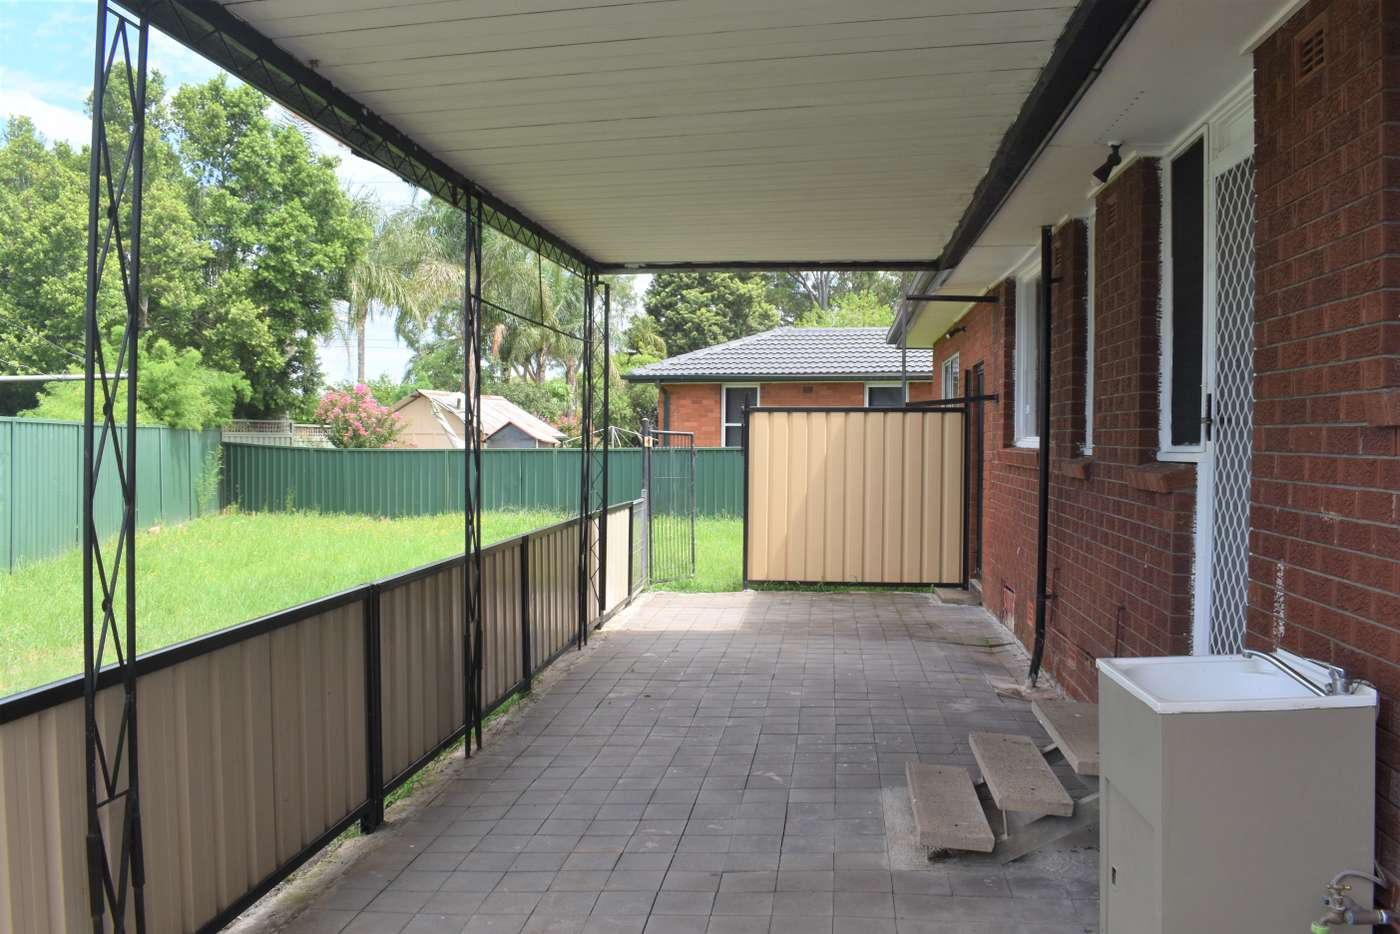 Seventh view of Homely house listing, 28 Rymill Road, Tregear NSW 2770